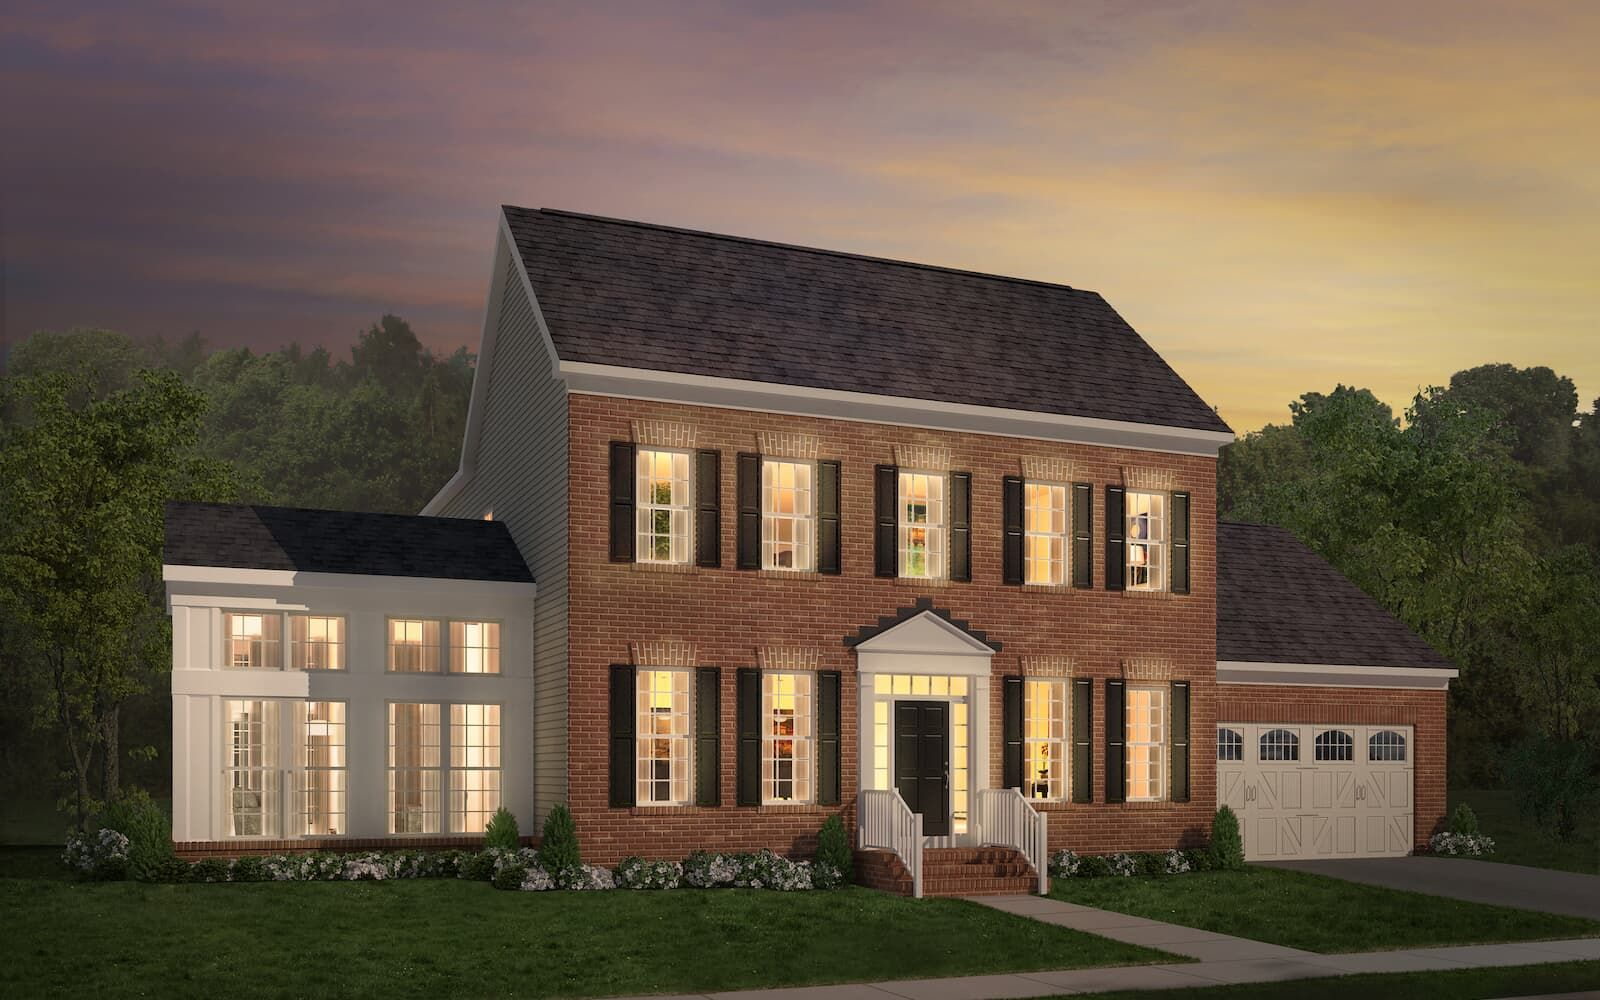 Exterior:Elevation 1 of the Fillmore II a home design by Brookfield Residential at The Bluffs at Sleeter Lake